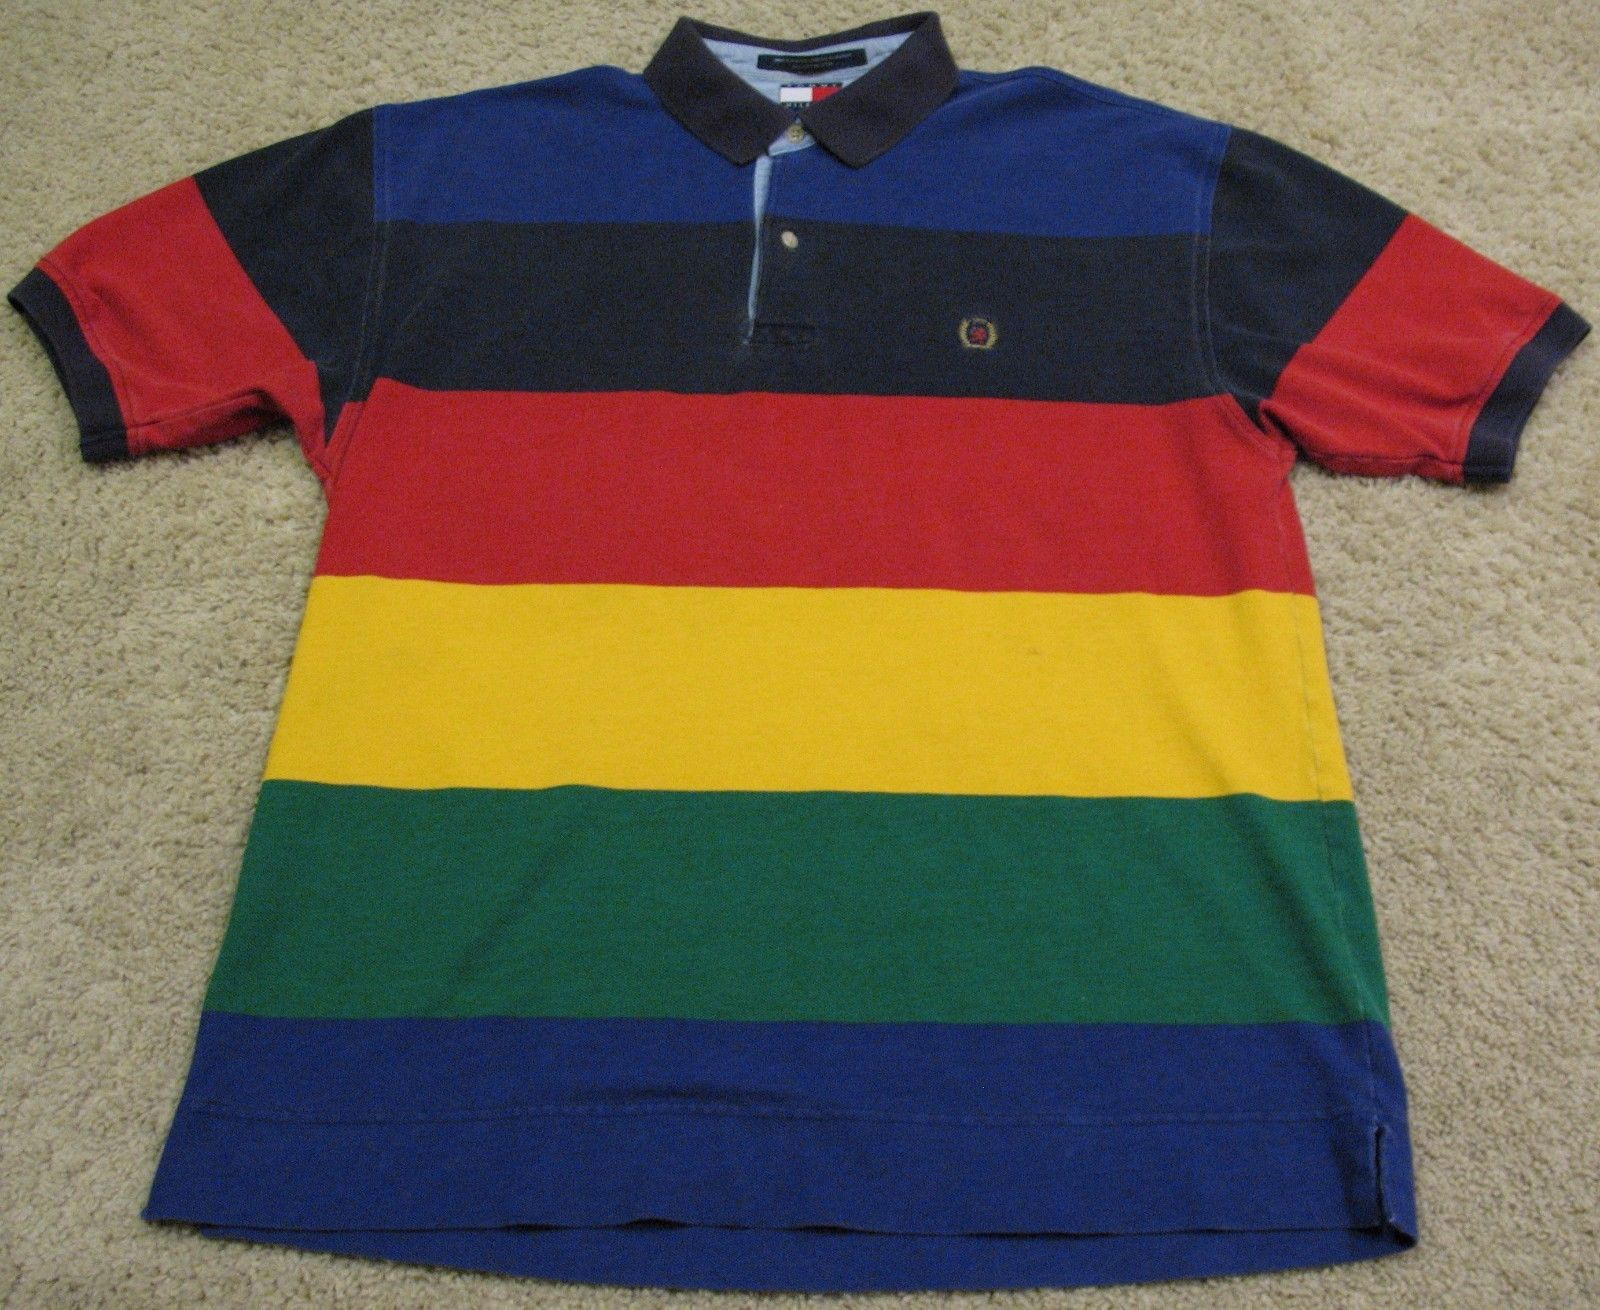 9483cf1cc Vintage 90s Tommy Hilfiger Rainbow Polo Shirt Blue Red Yellow Green ...